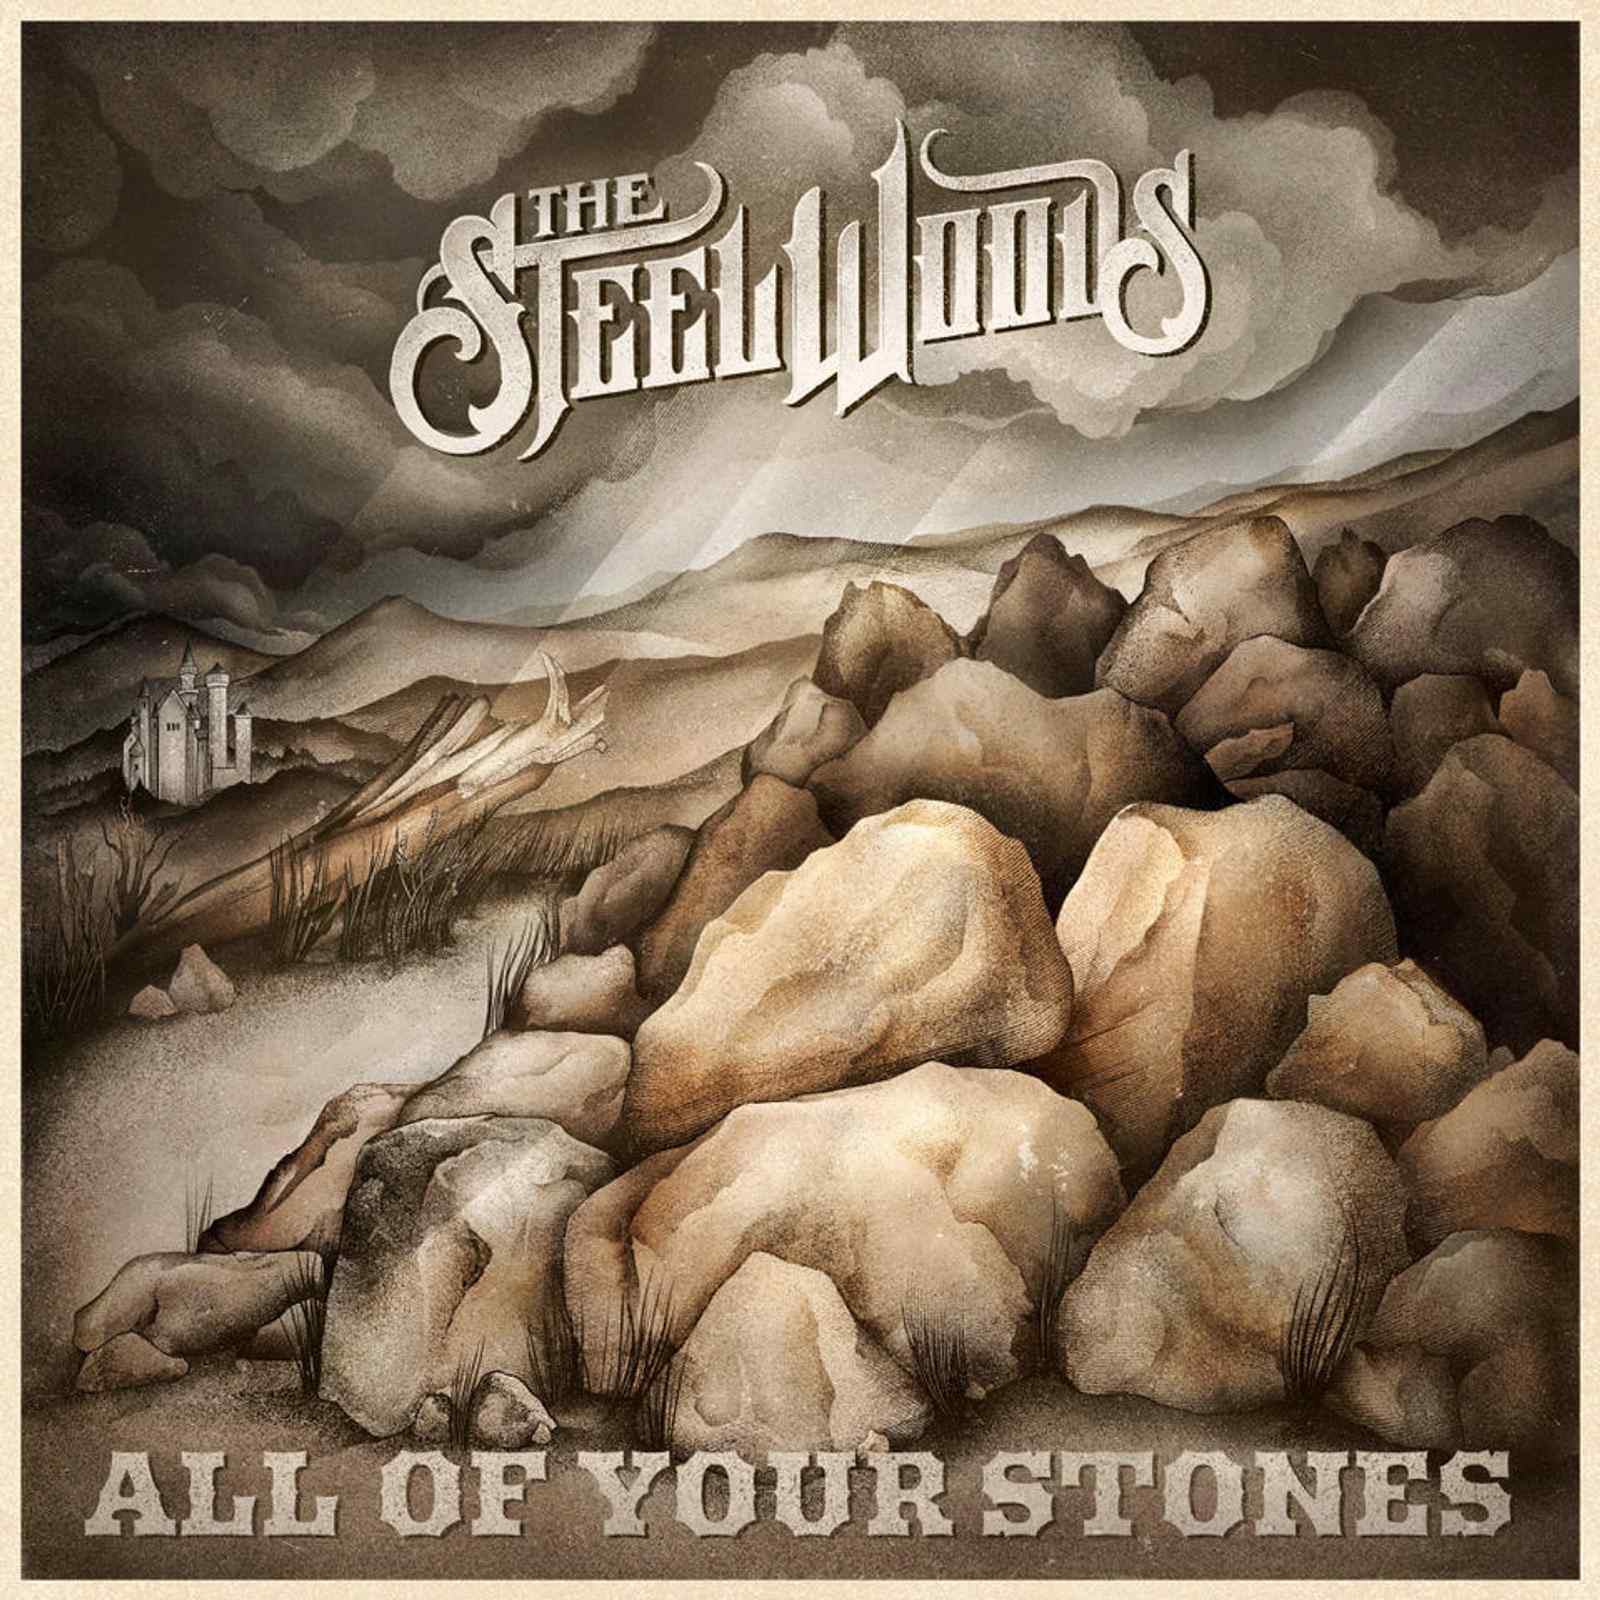 The Steel Woods Announce New Album After Death of Guitarist Jason Cope